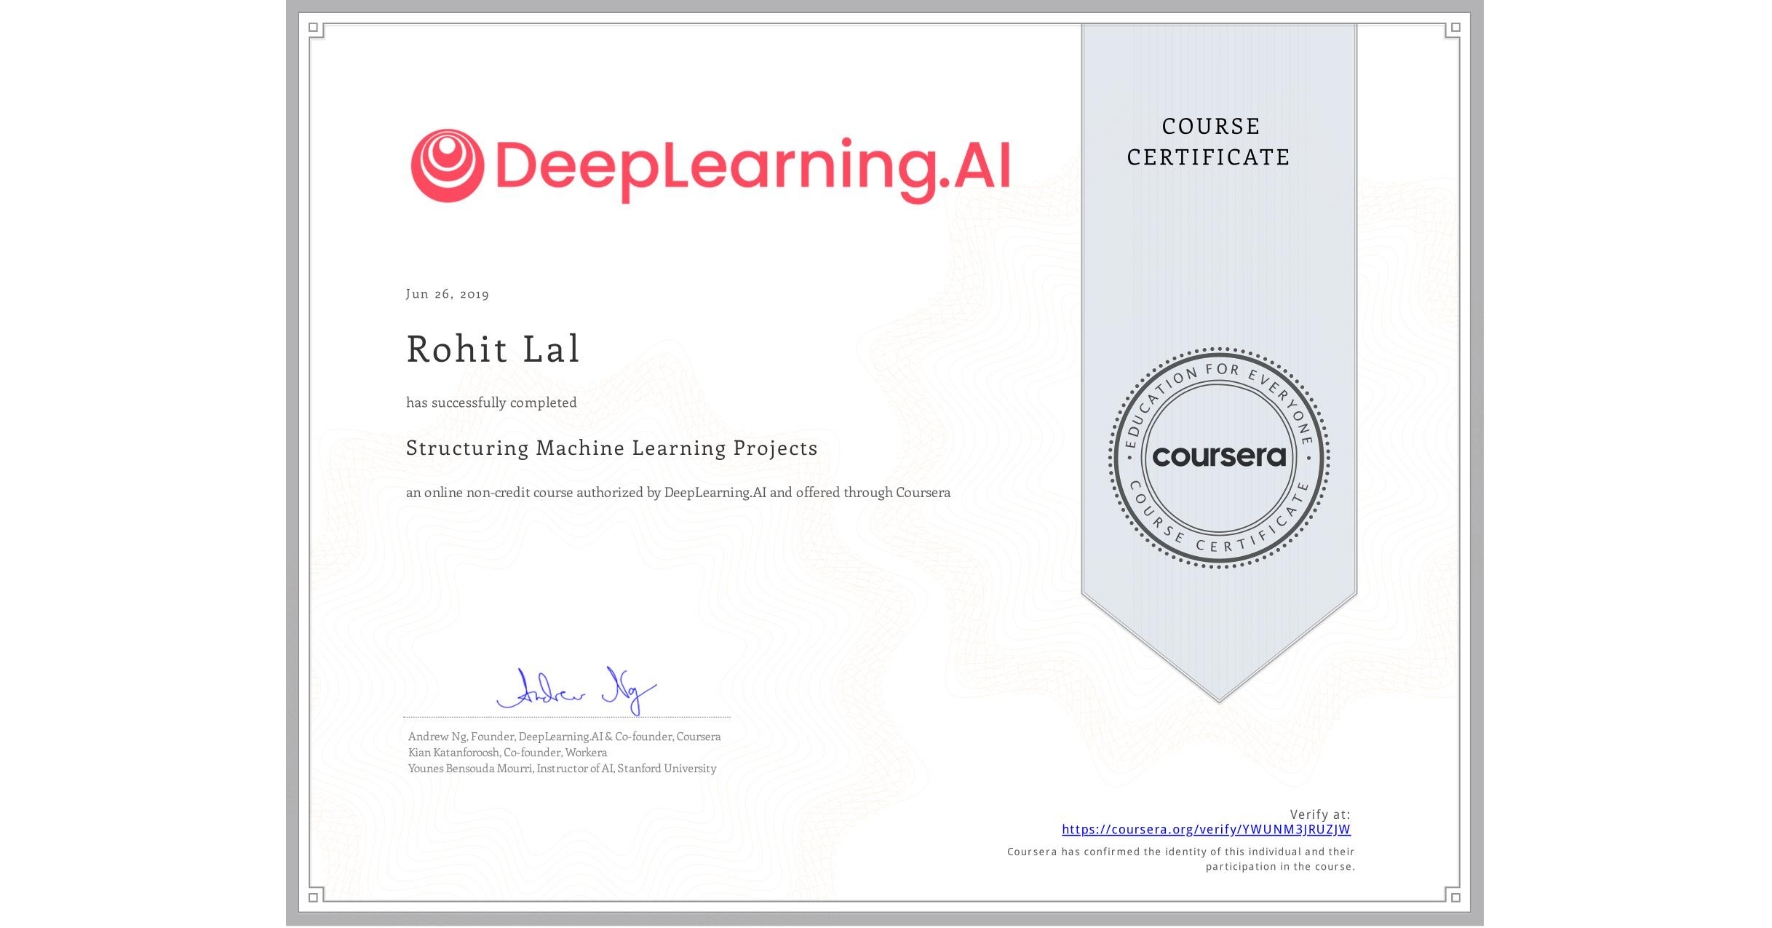 View certificate for Rohit Lal, Structuring Machine Learning Projects, an online non-credit course authorized by DeepLearning.AI and offered through Coursera